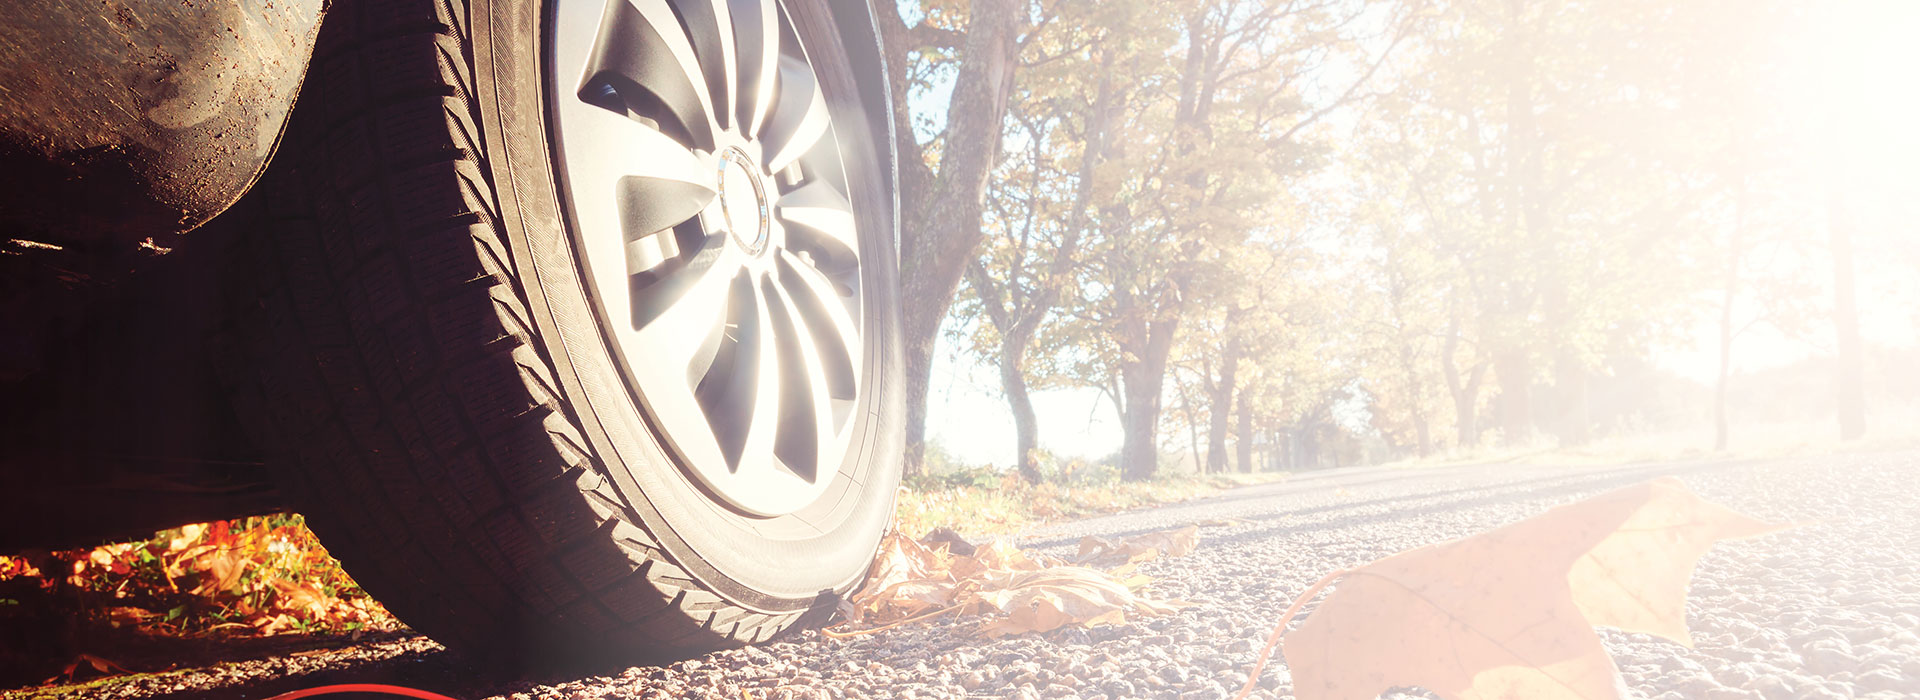 Car tire on road. Fall leaves